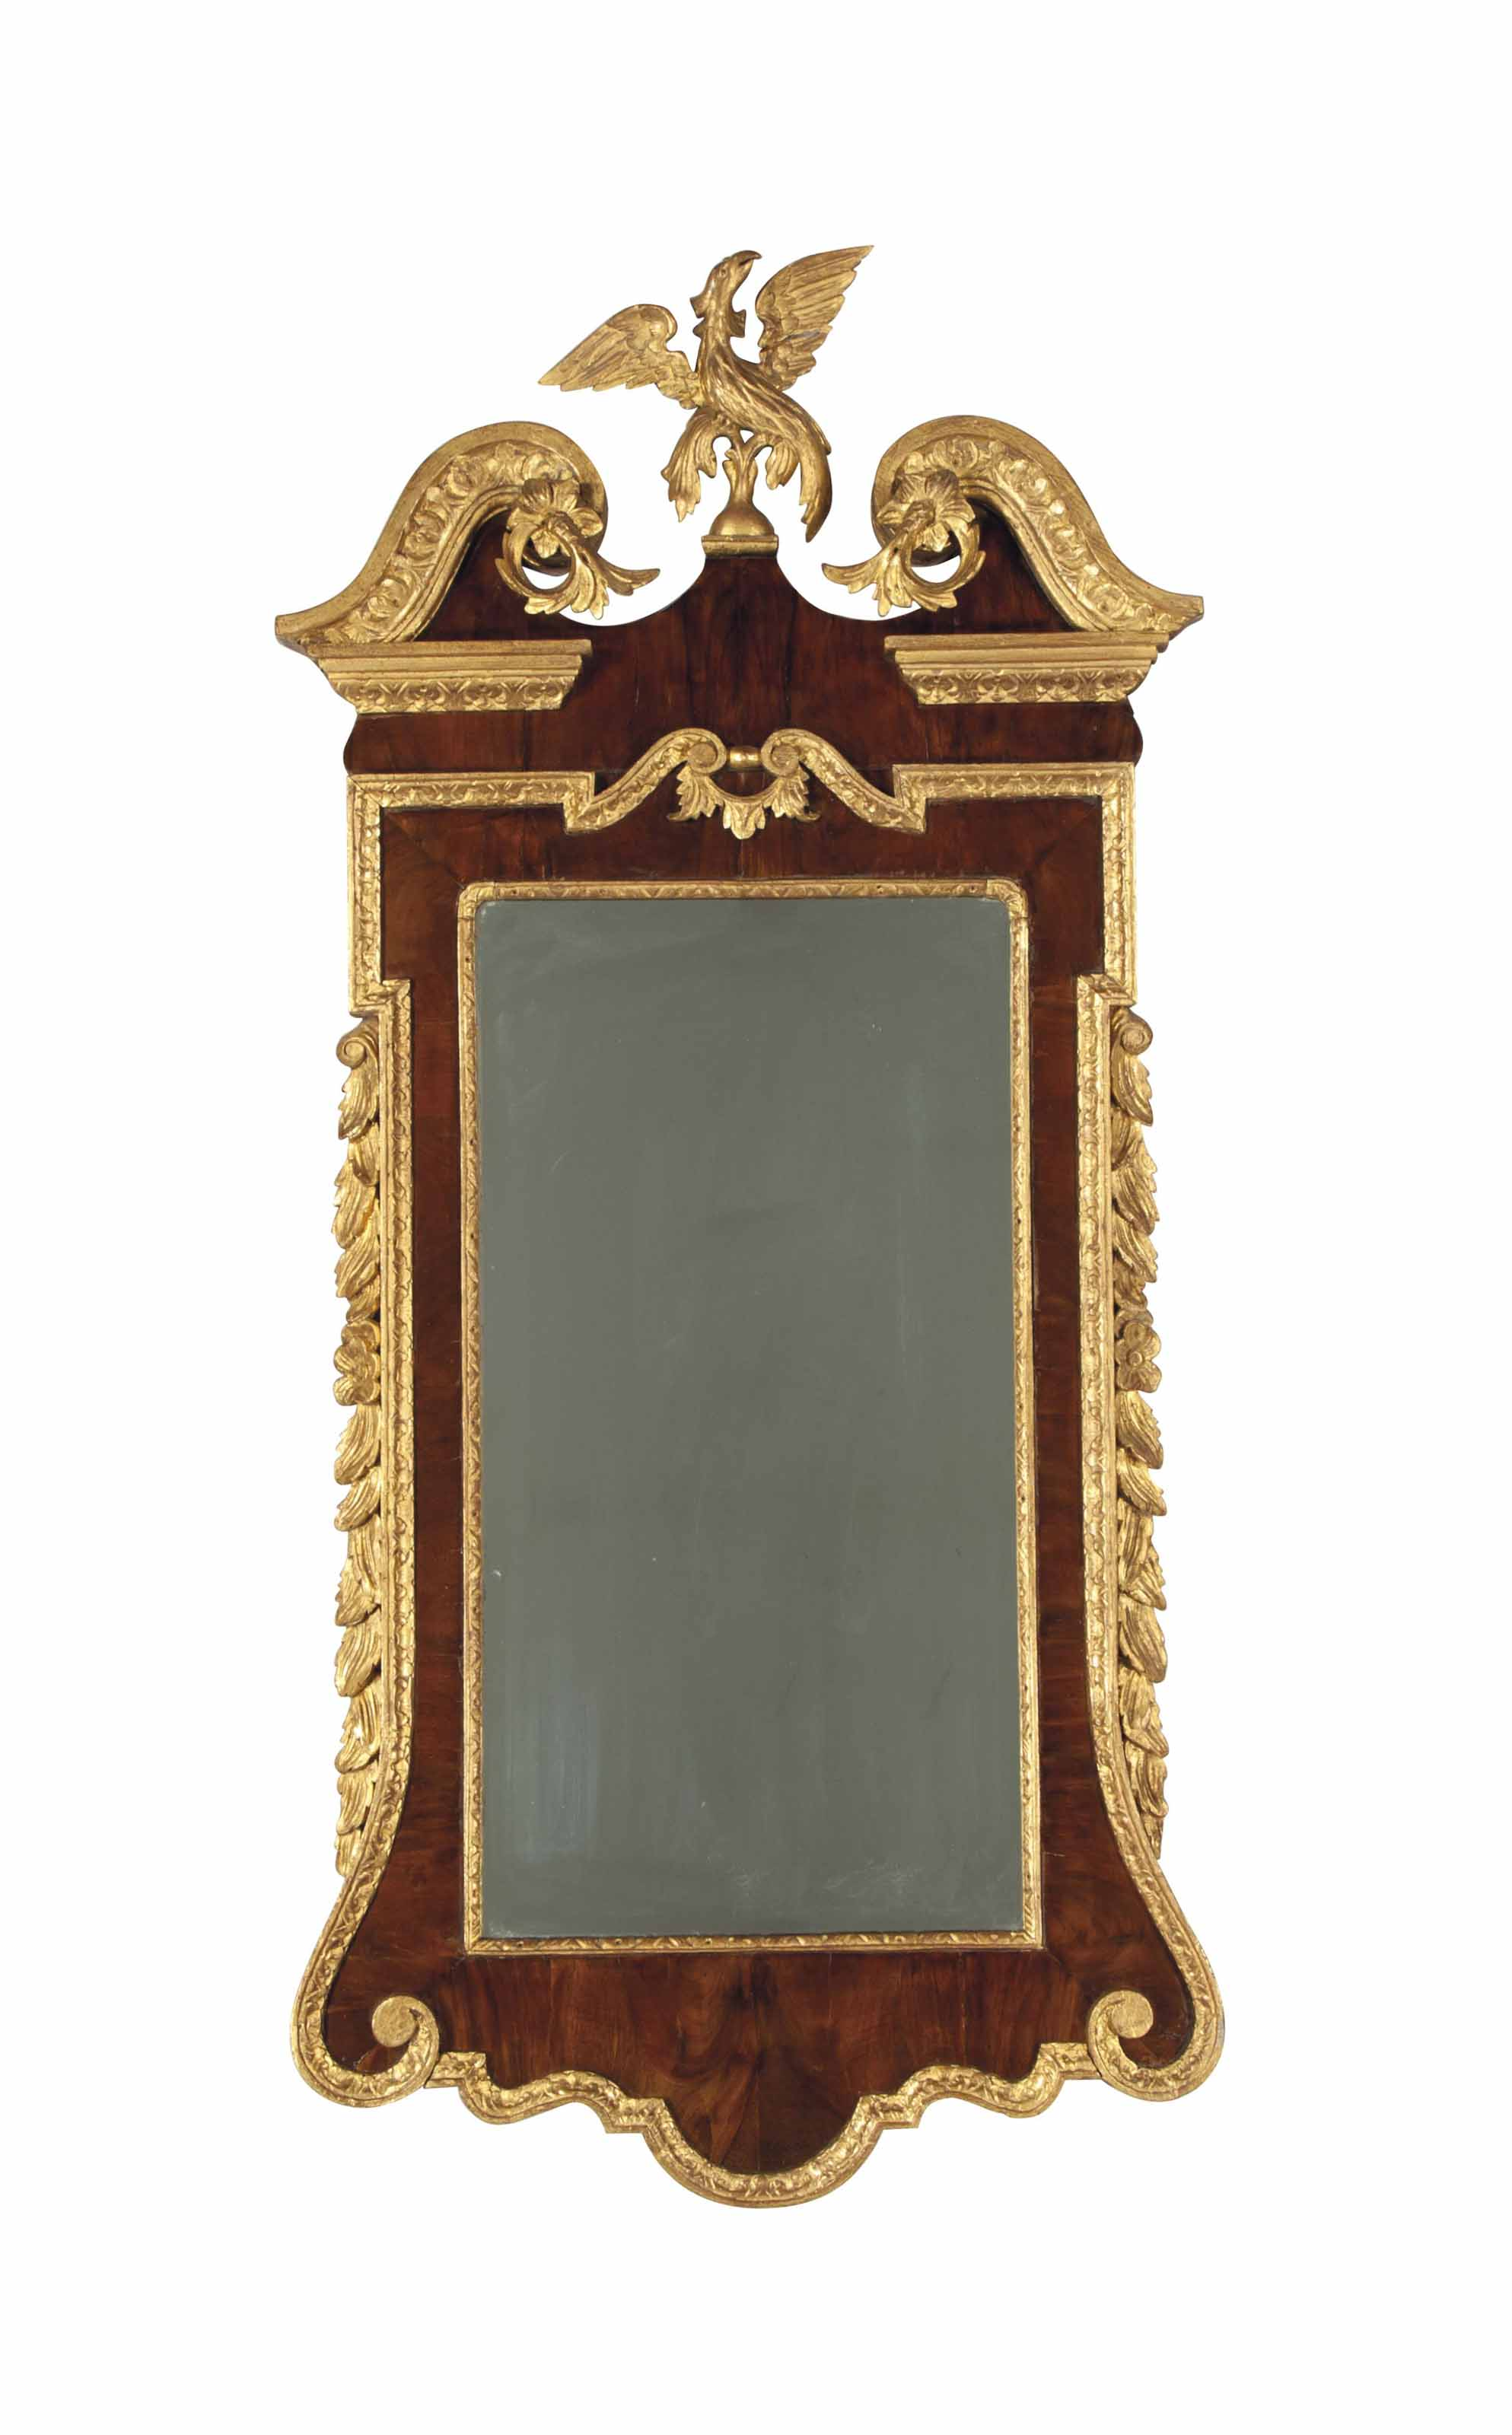 AN ENGLISH WALNUT AND PARCEL-GILT MIRROR,